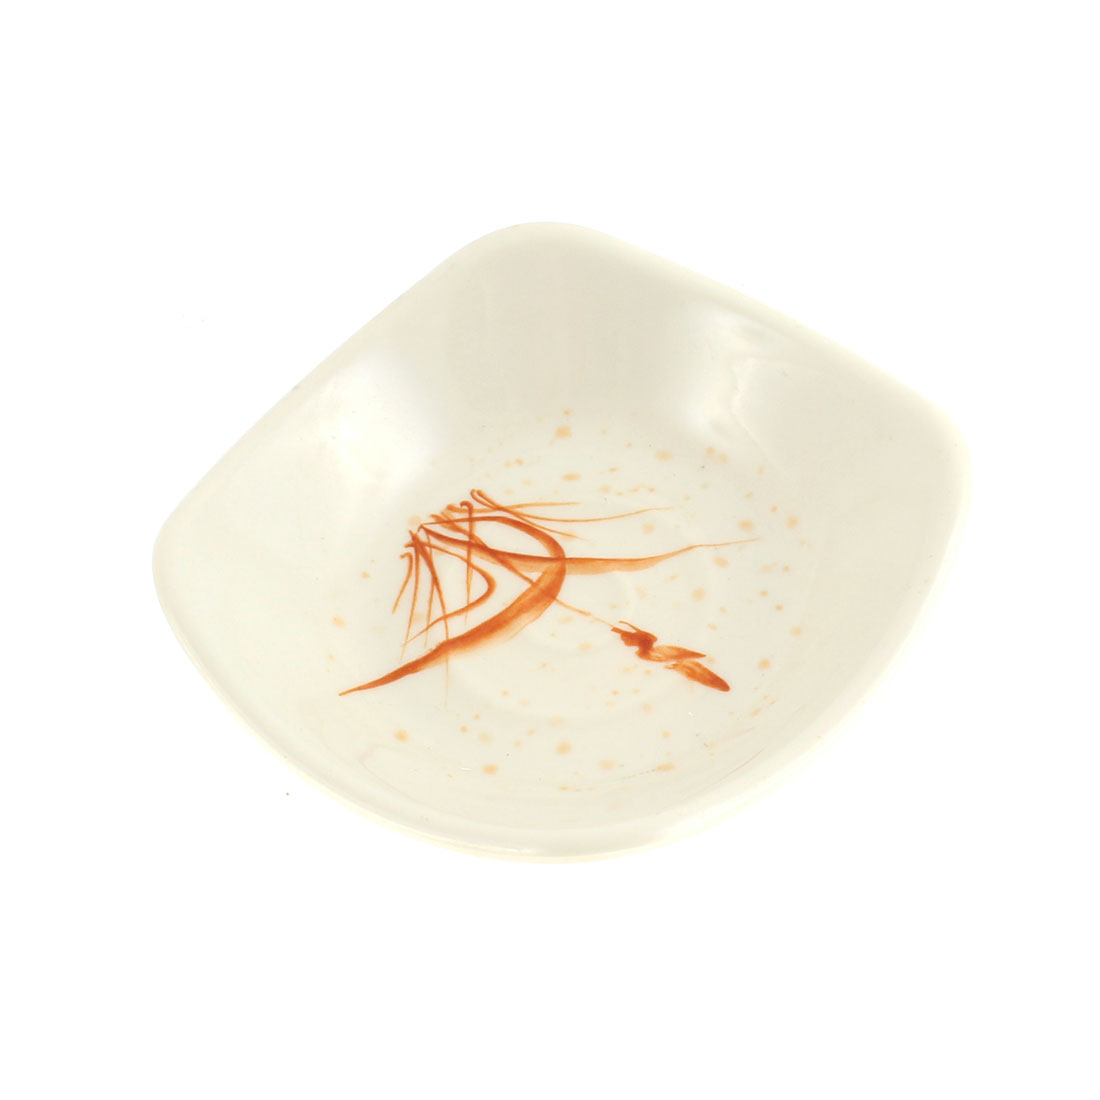 Square Grass Pattern Soy Sauce Dipping Sushi Mini Dish Plate 115mm Length